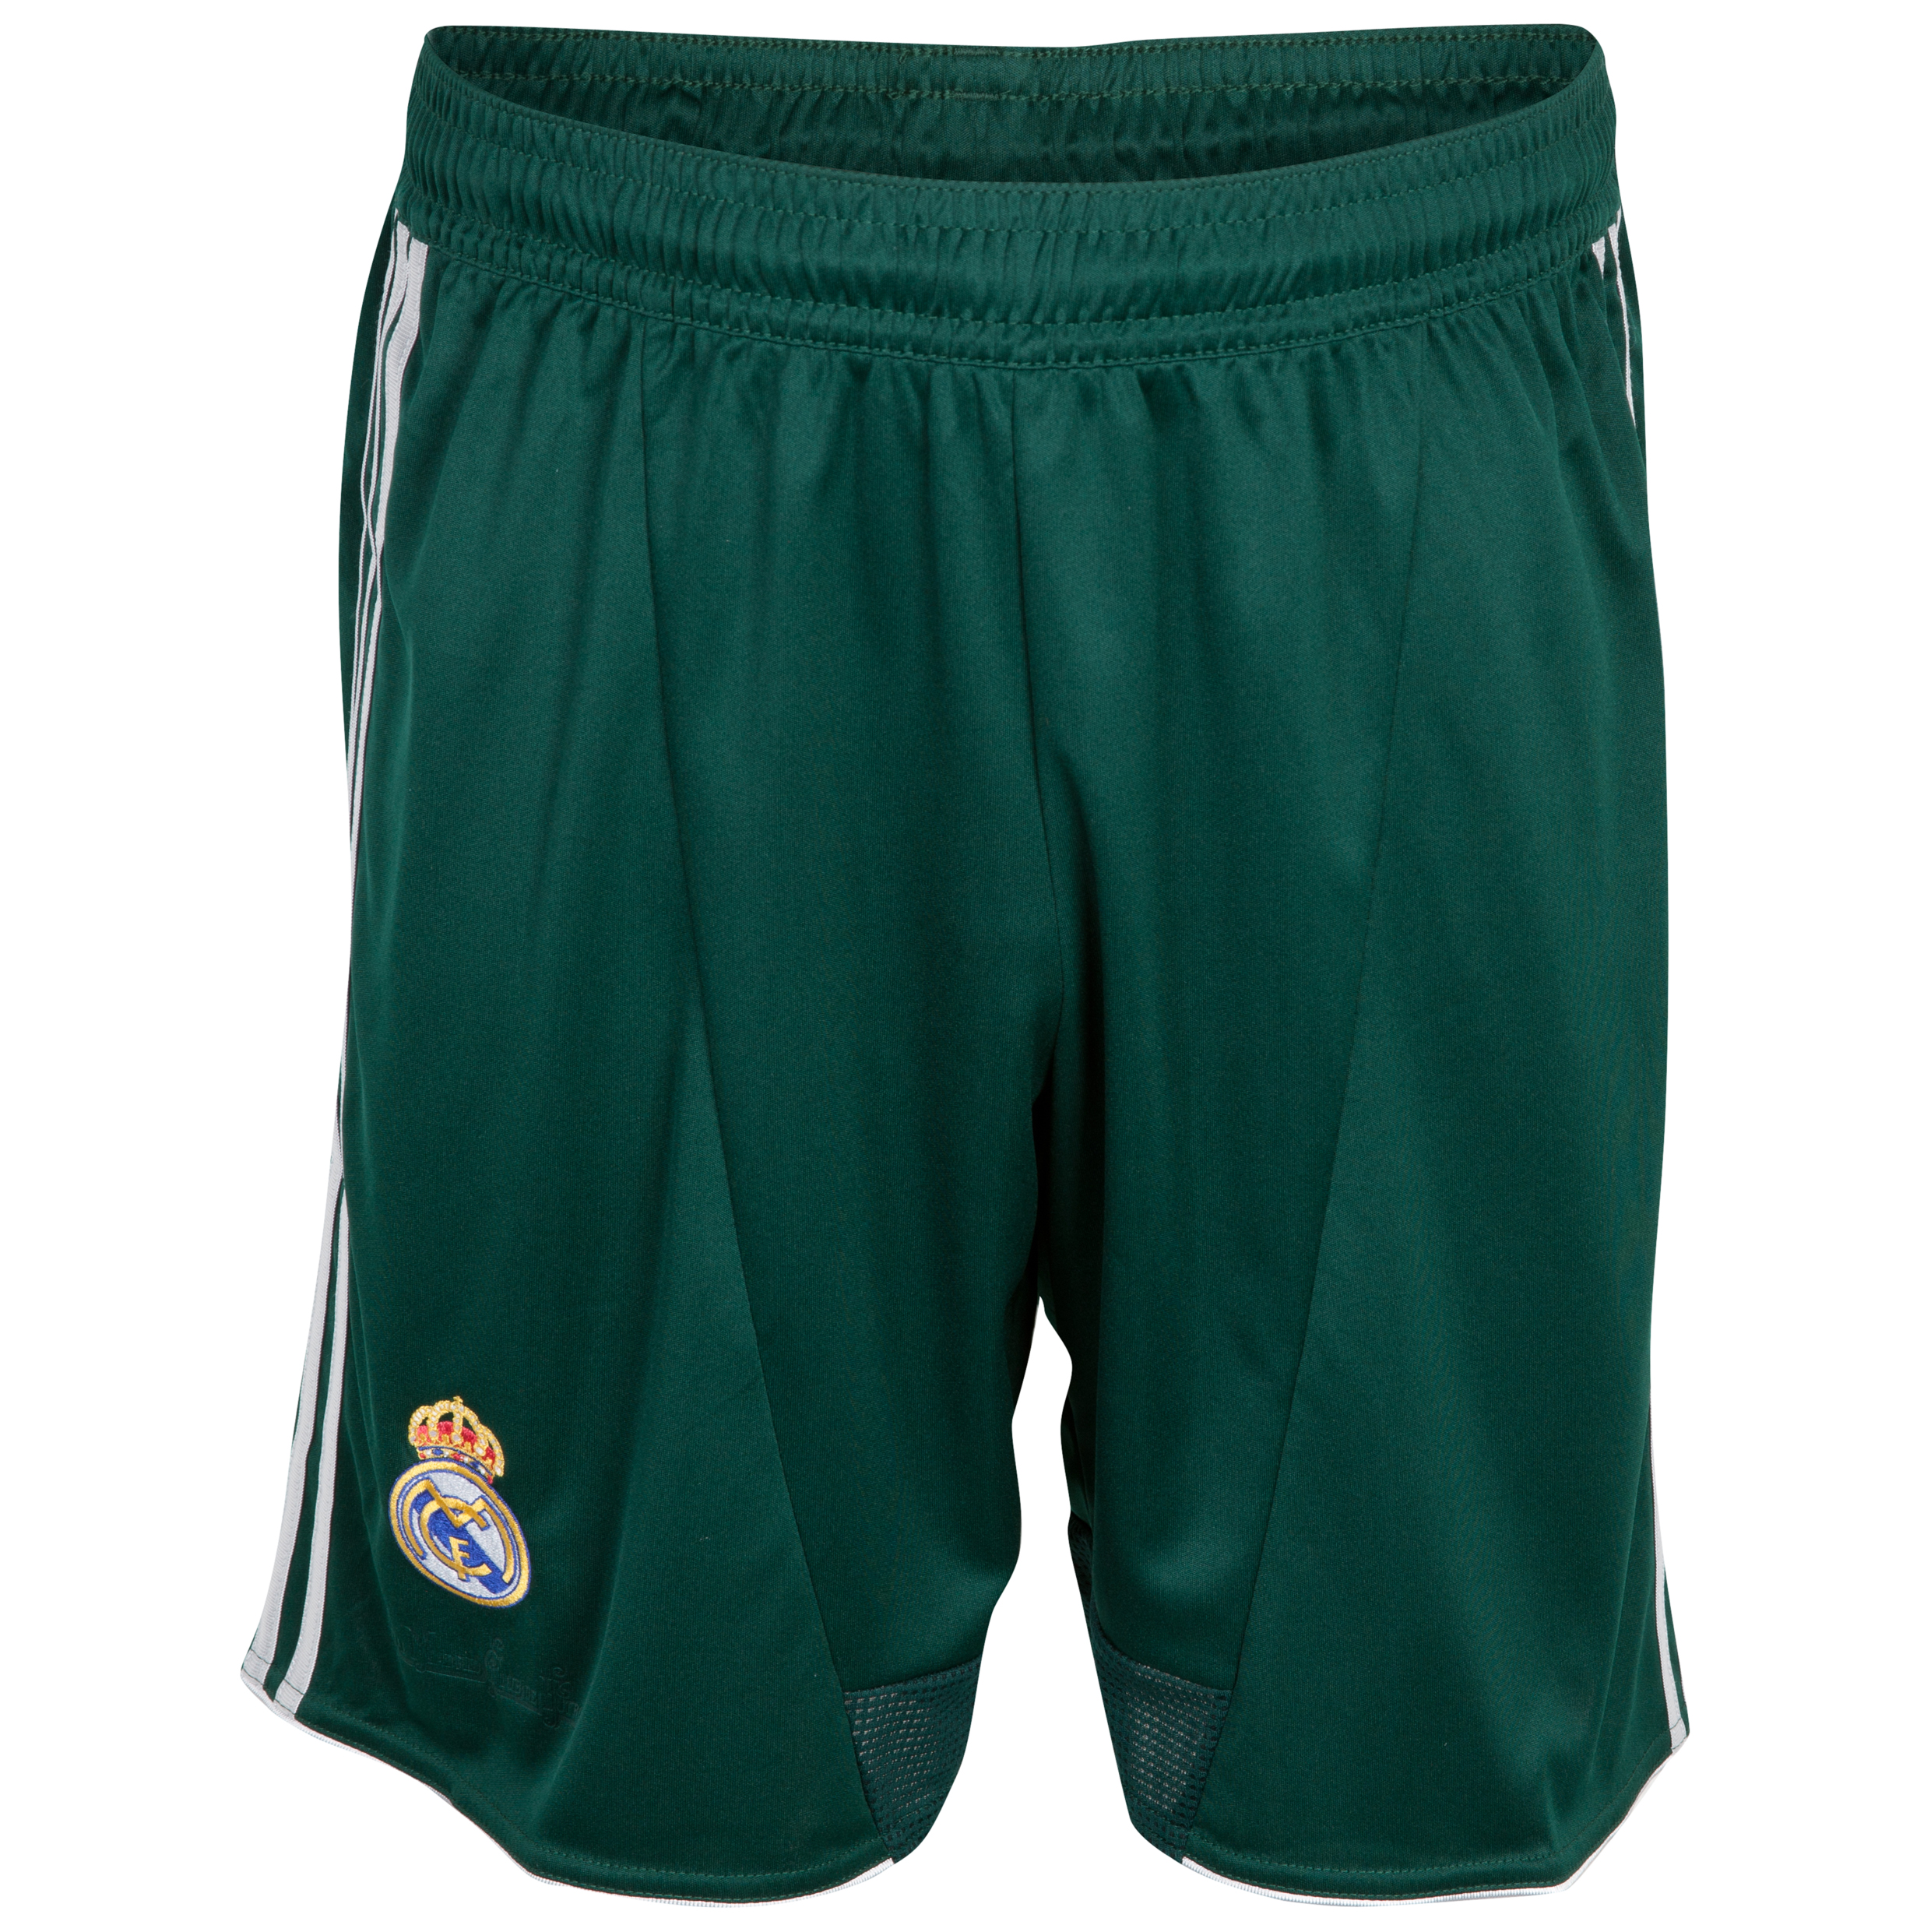 Real Madrid Third Short 2012/13 - Youths